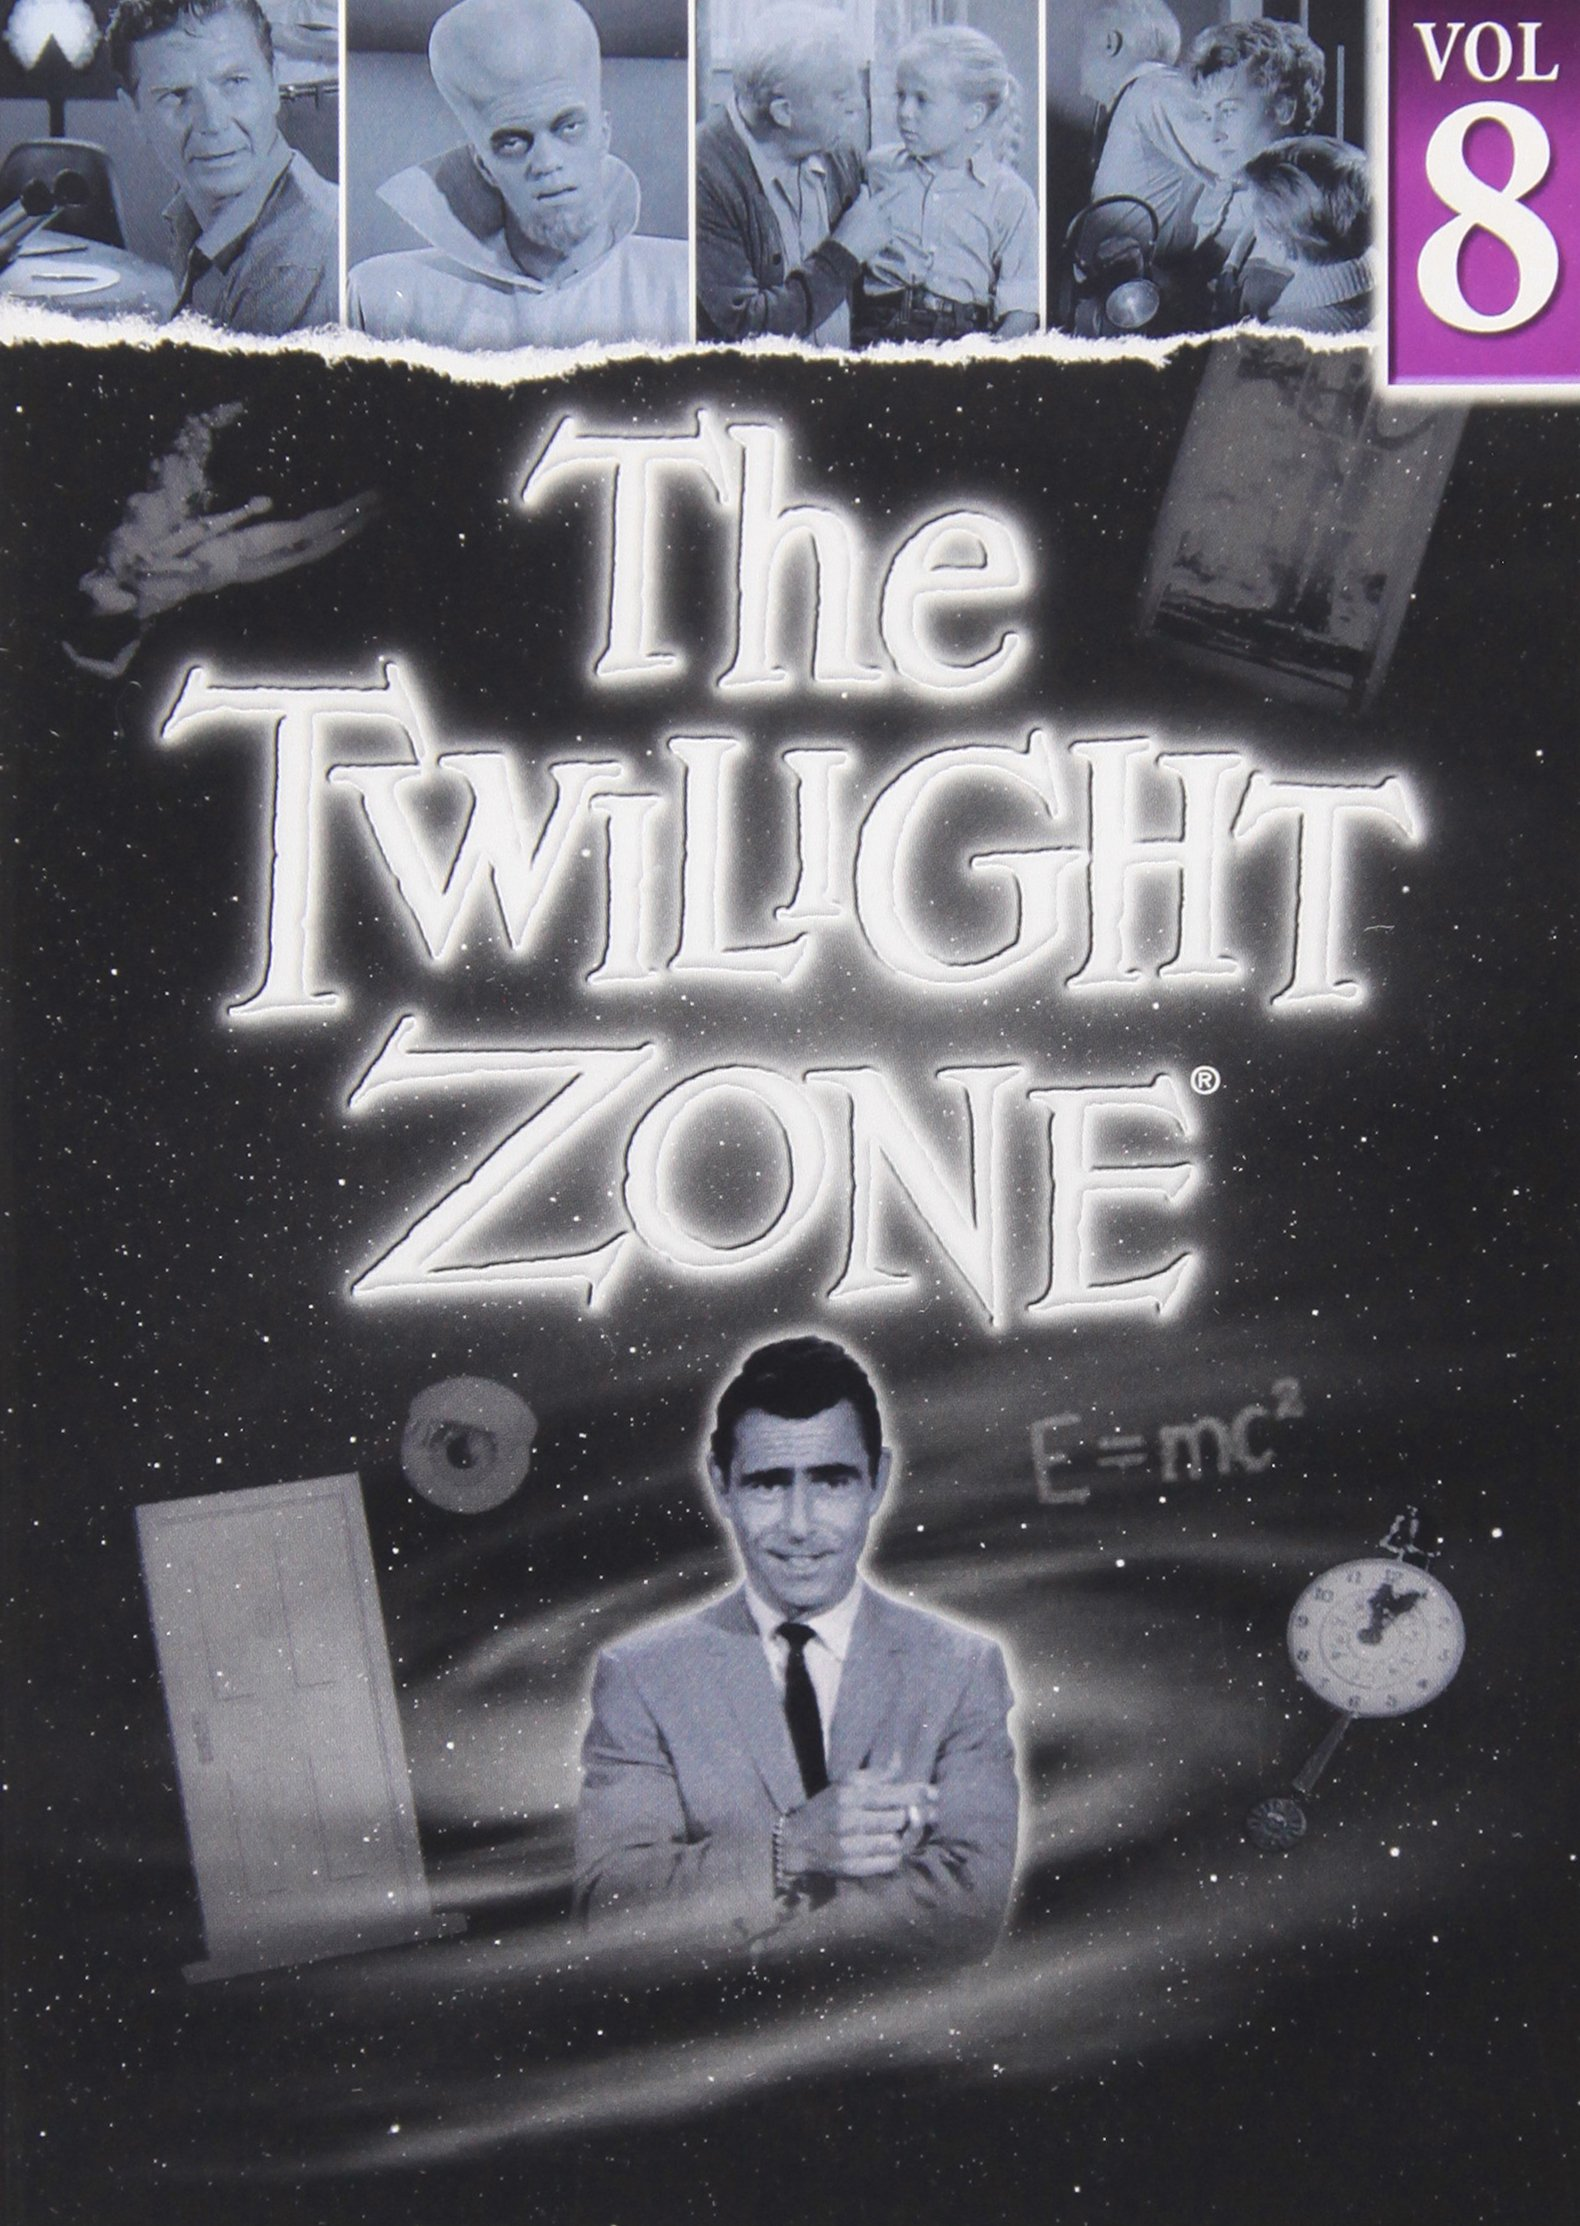 The Twilight Zone: Vol. 8 by Image Entertainment